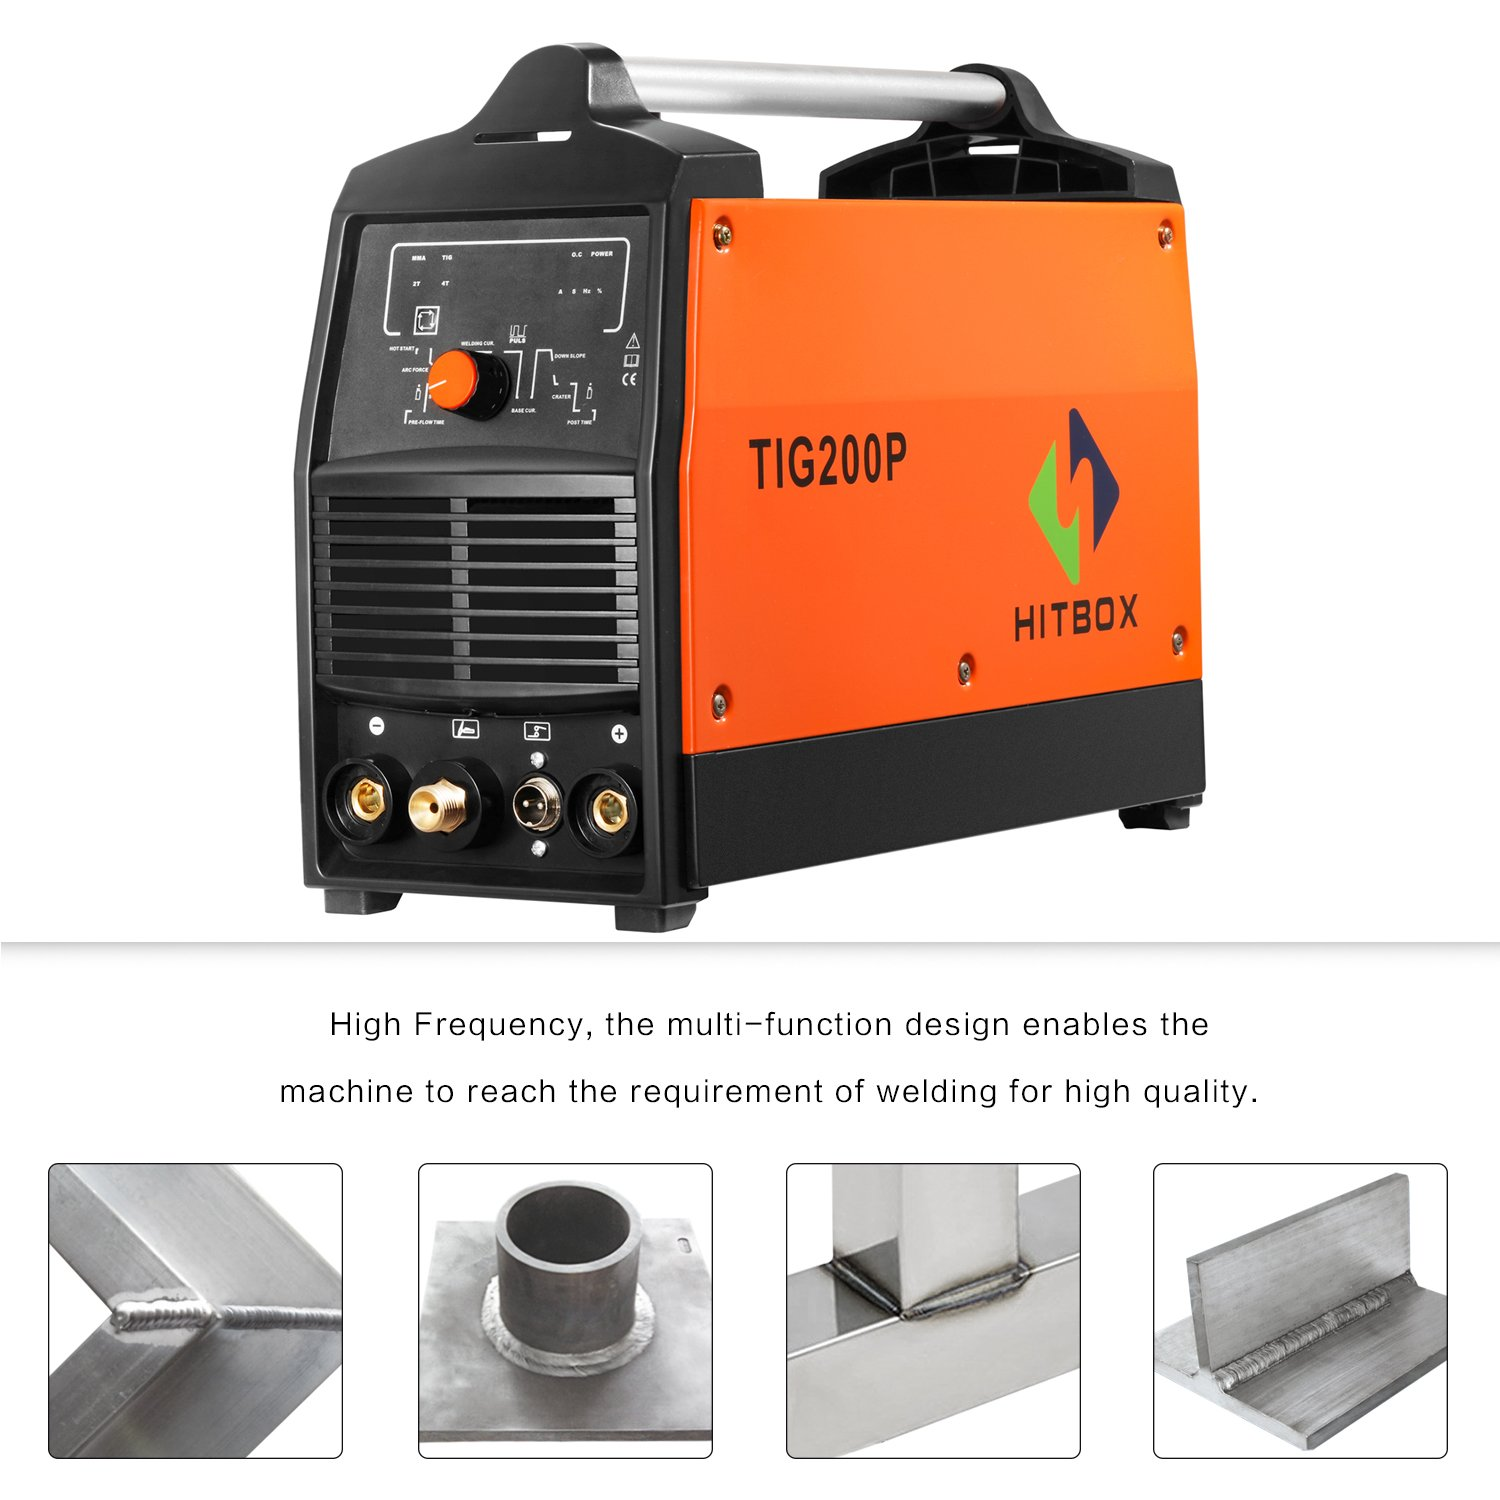 200A Inverter TIG Welder Pulse Digital High Frequency TIG Welding Machine  MMA Stick Mosfet 60% D/C Welder Machine Digital Control .